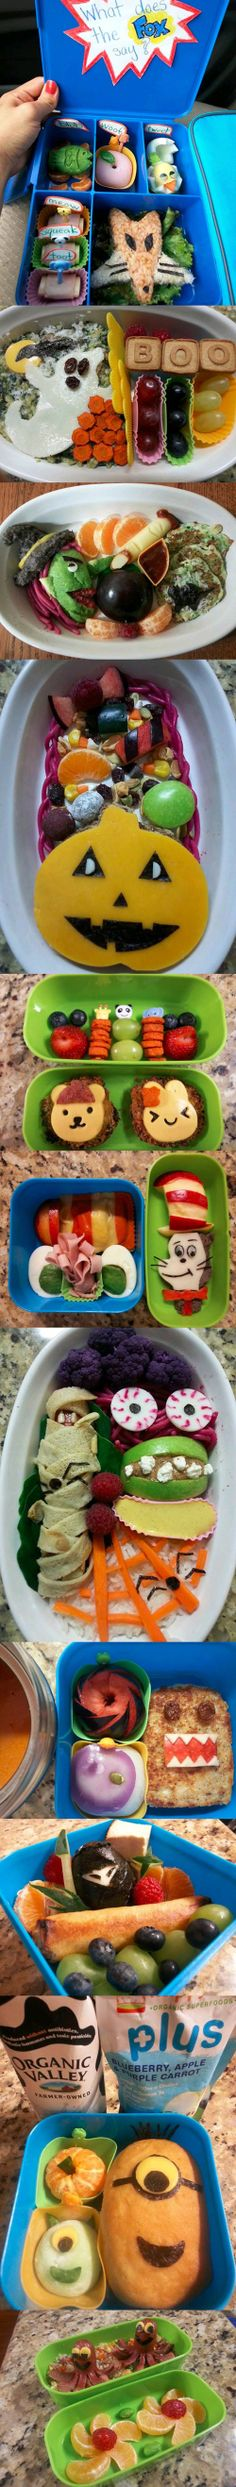 Here are some of the most creative and healthiest school lunches to hit the internet.